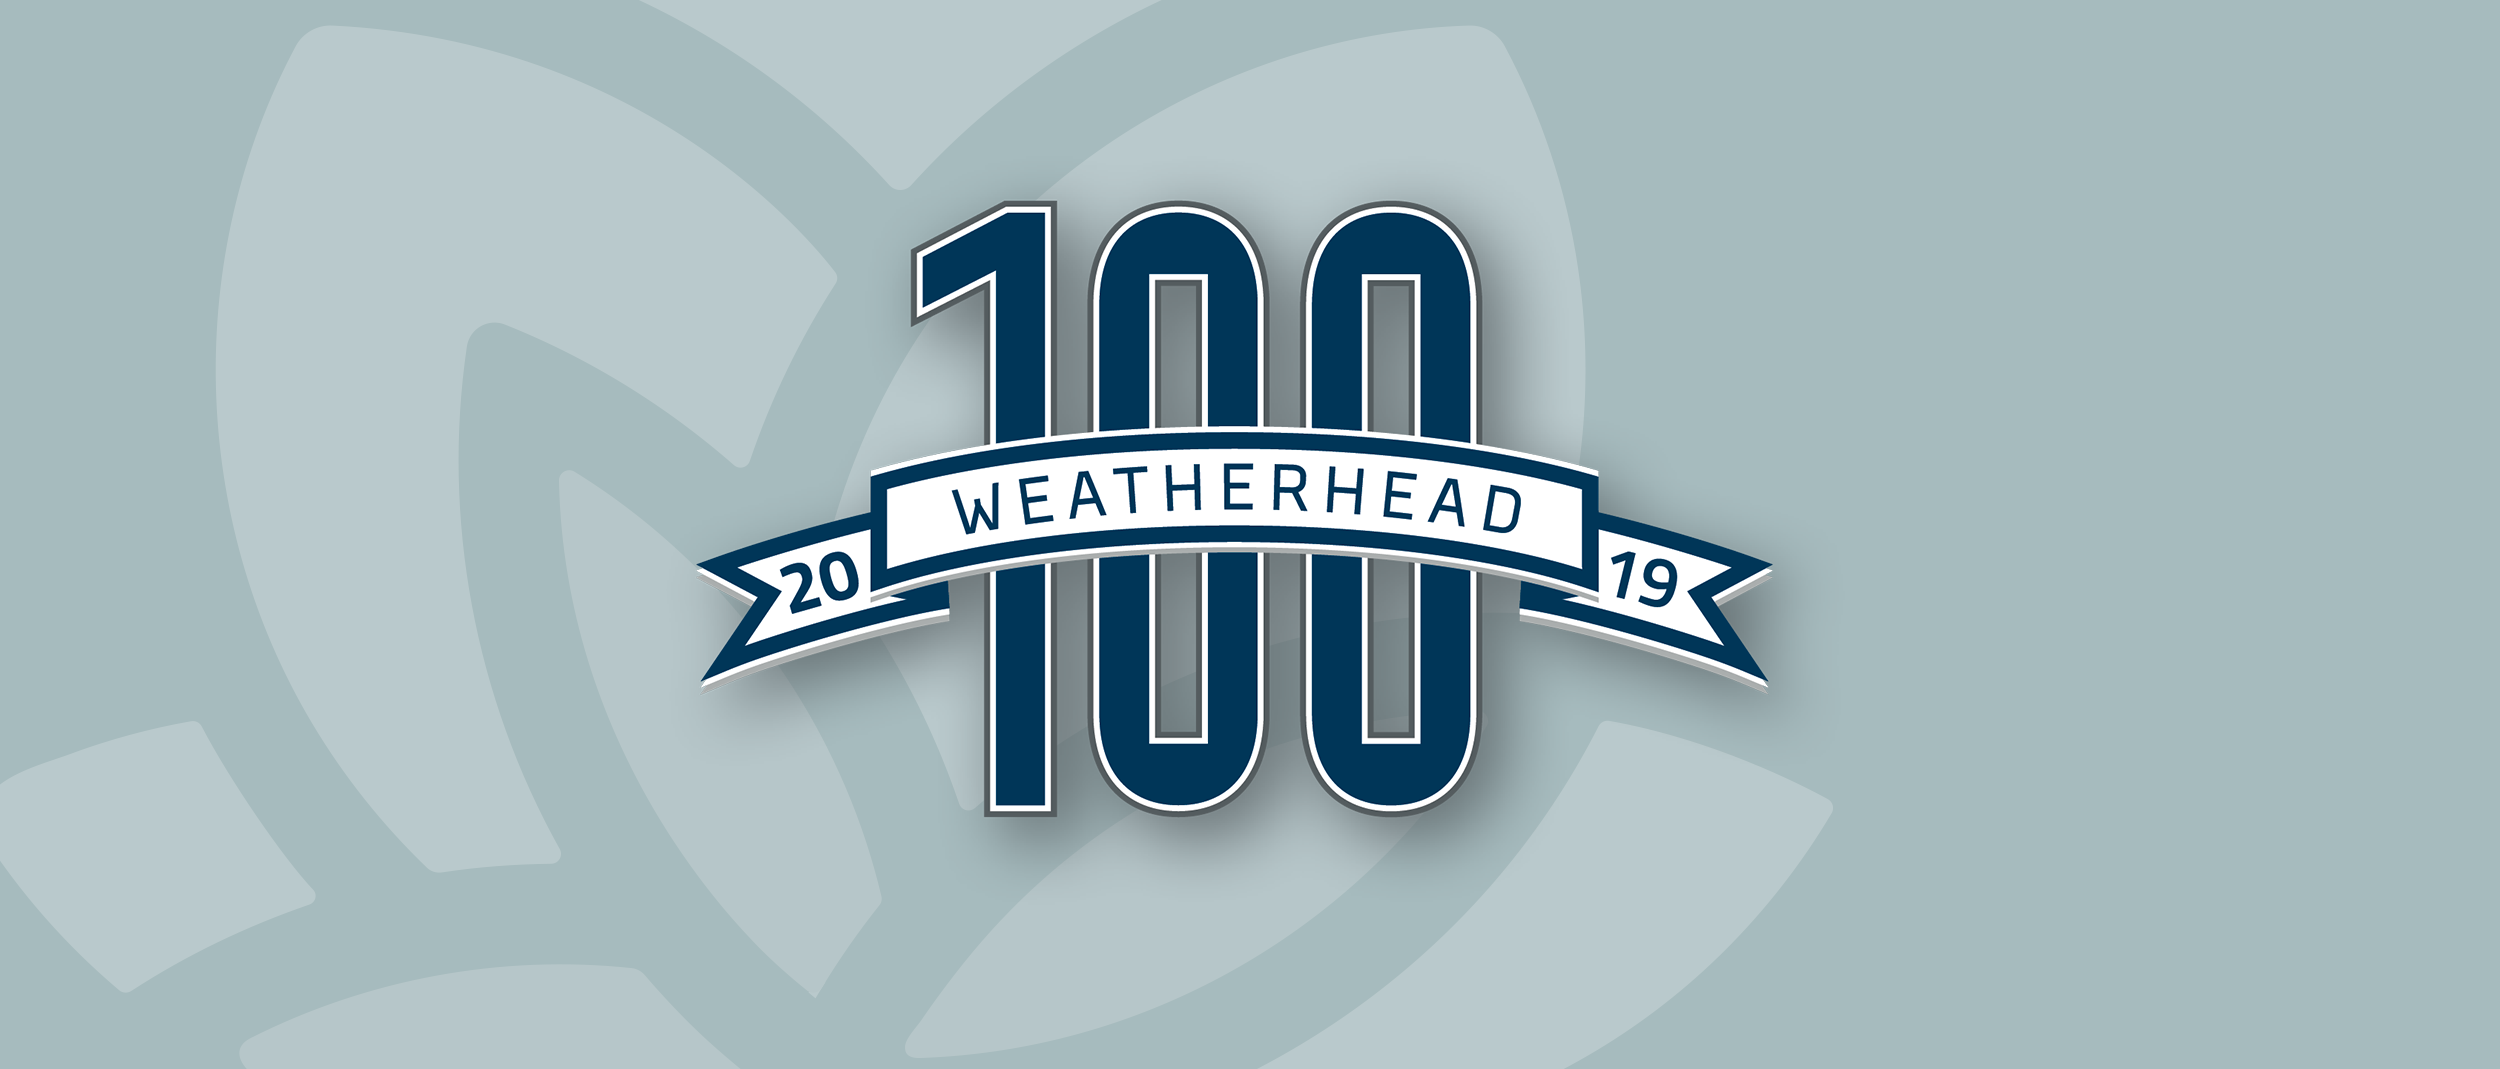 Calyx Recognized as a 2019 Weatherhead 100 Award Winner